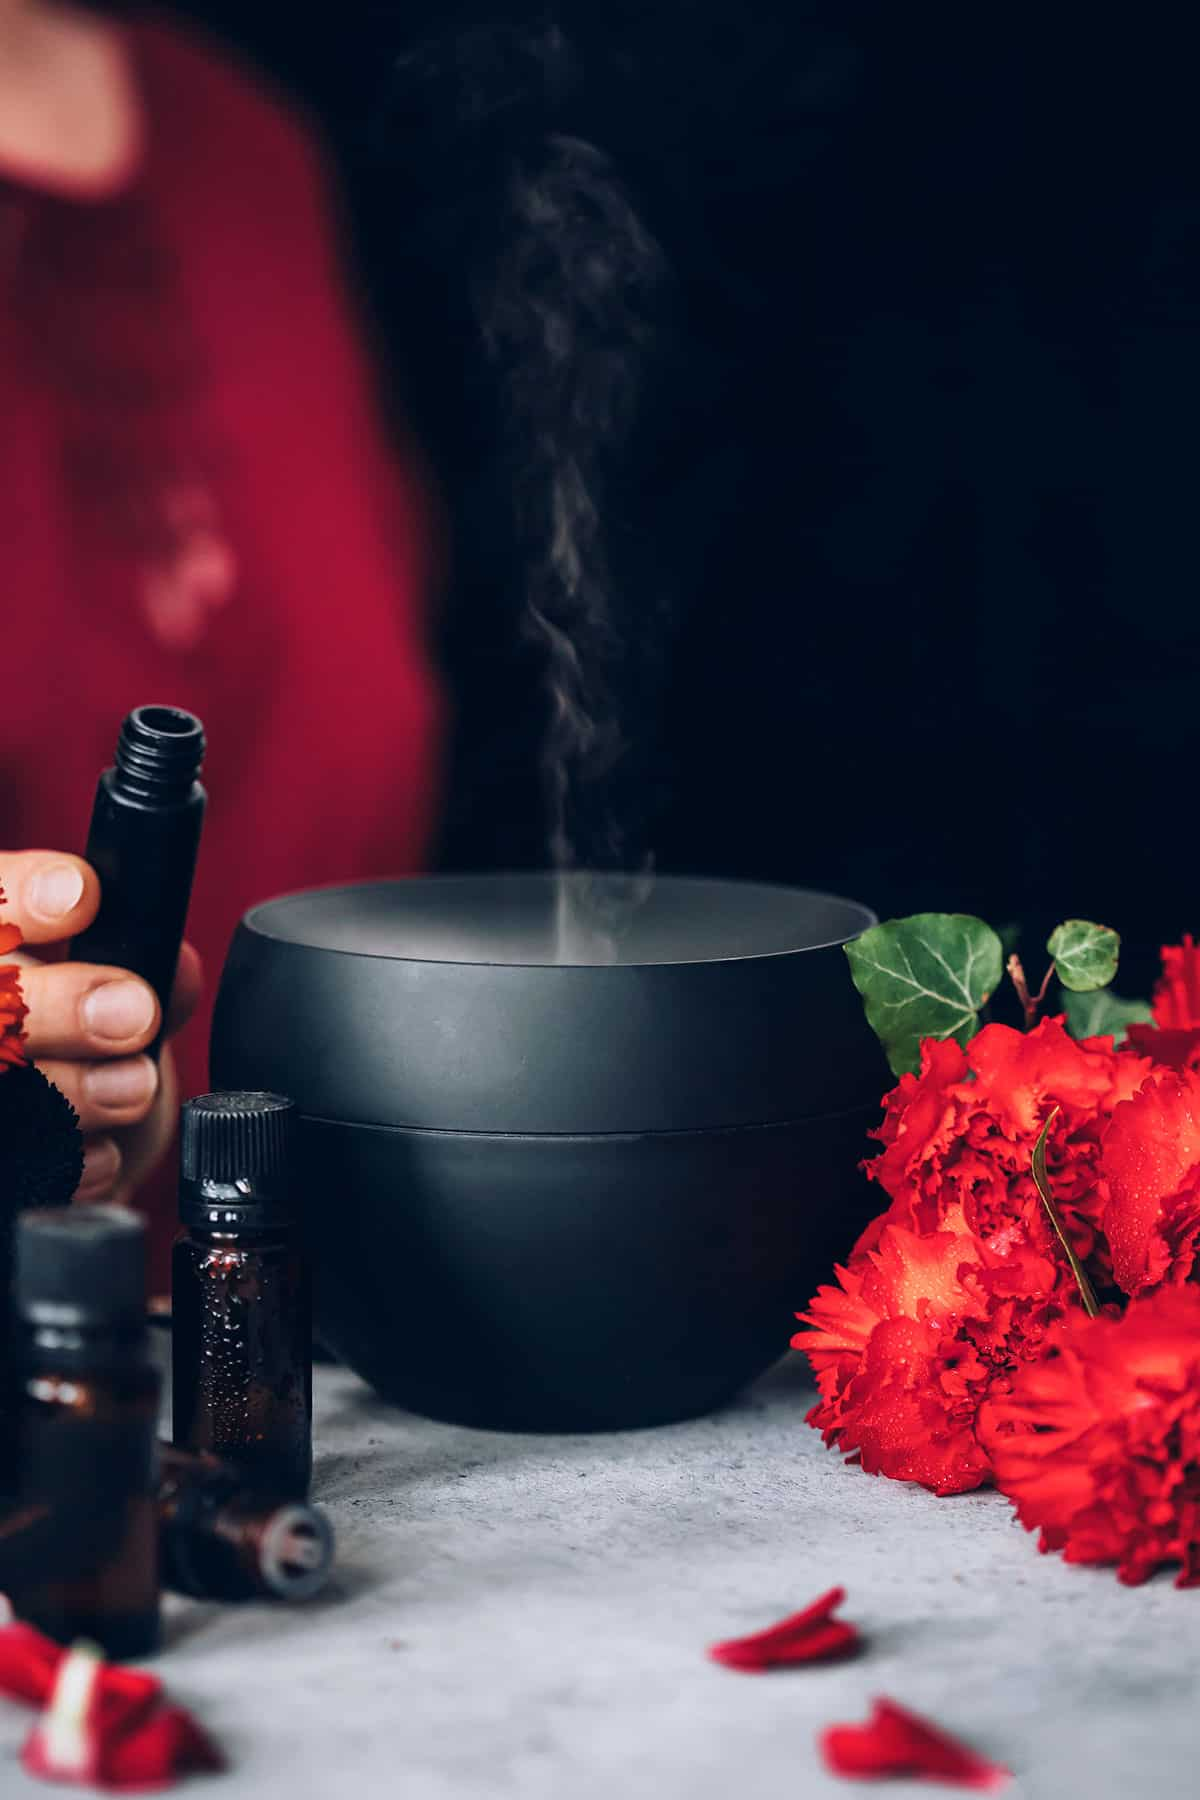 10 Aphrodisiac Essential Oils for Love and Romance | Hello Glow